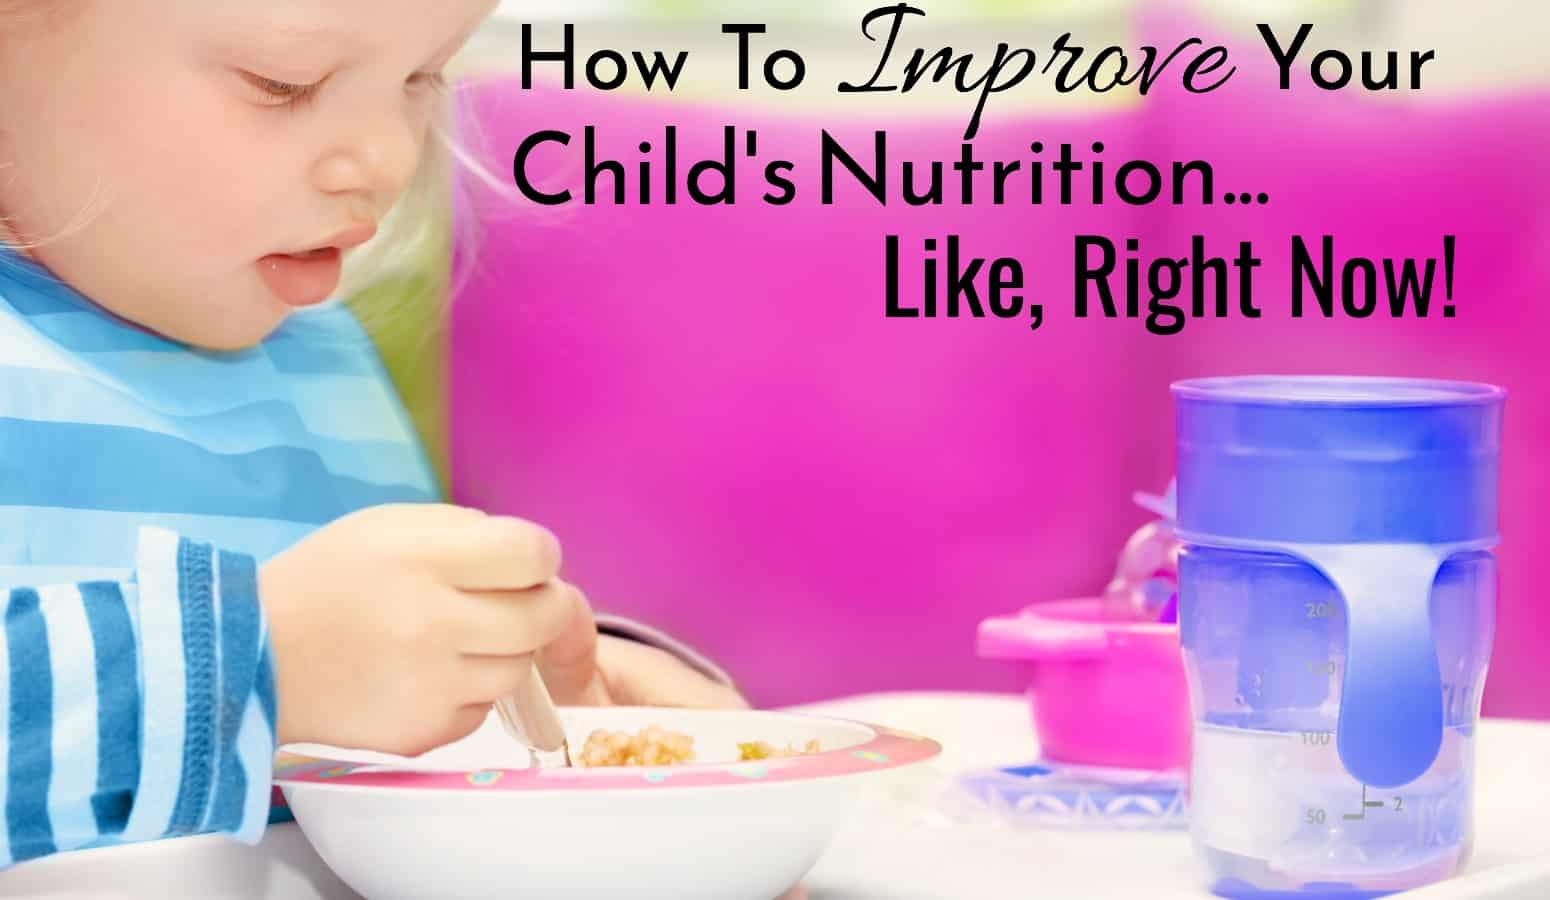 How To Improve Your Child's Nutrition Quickly and Easily